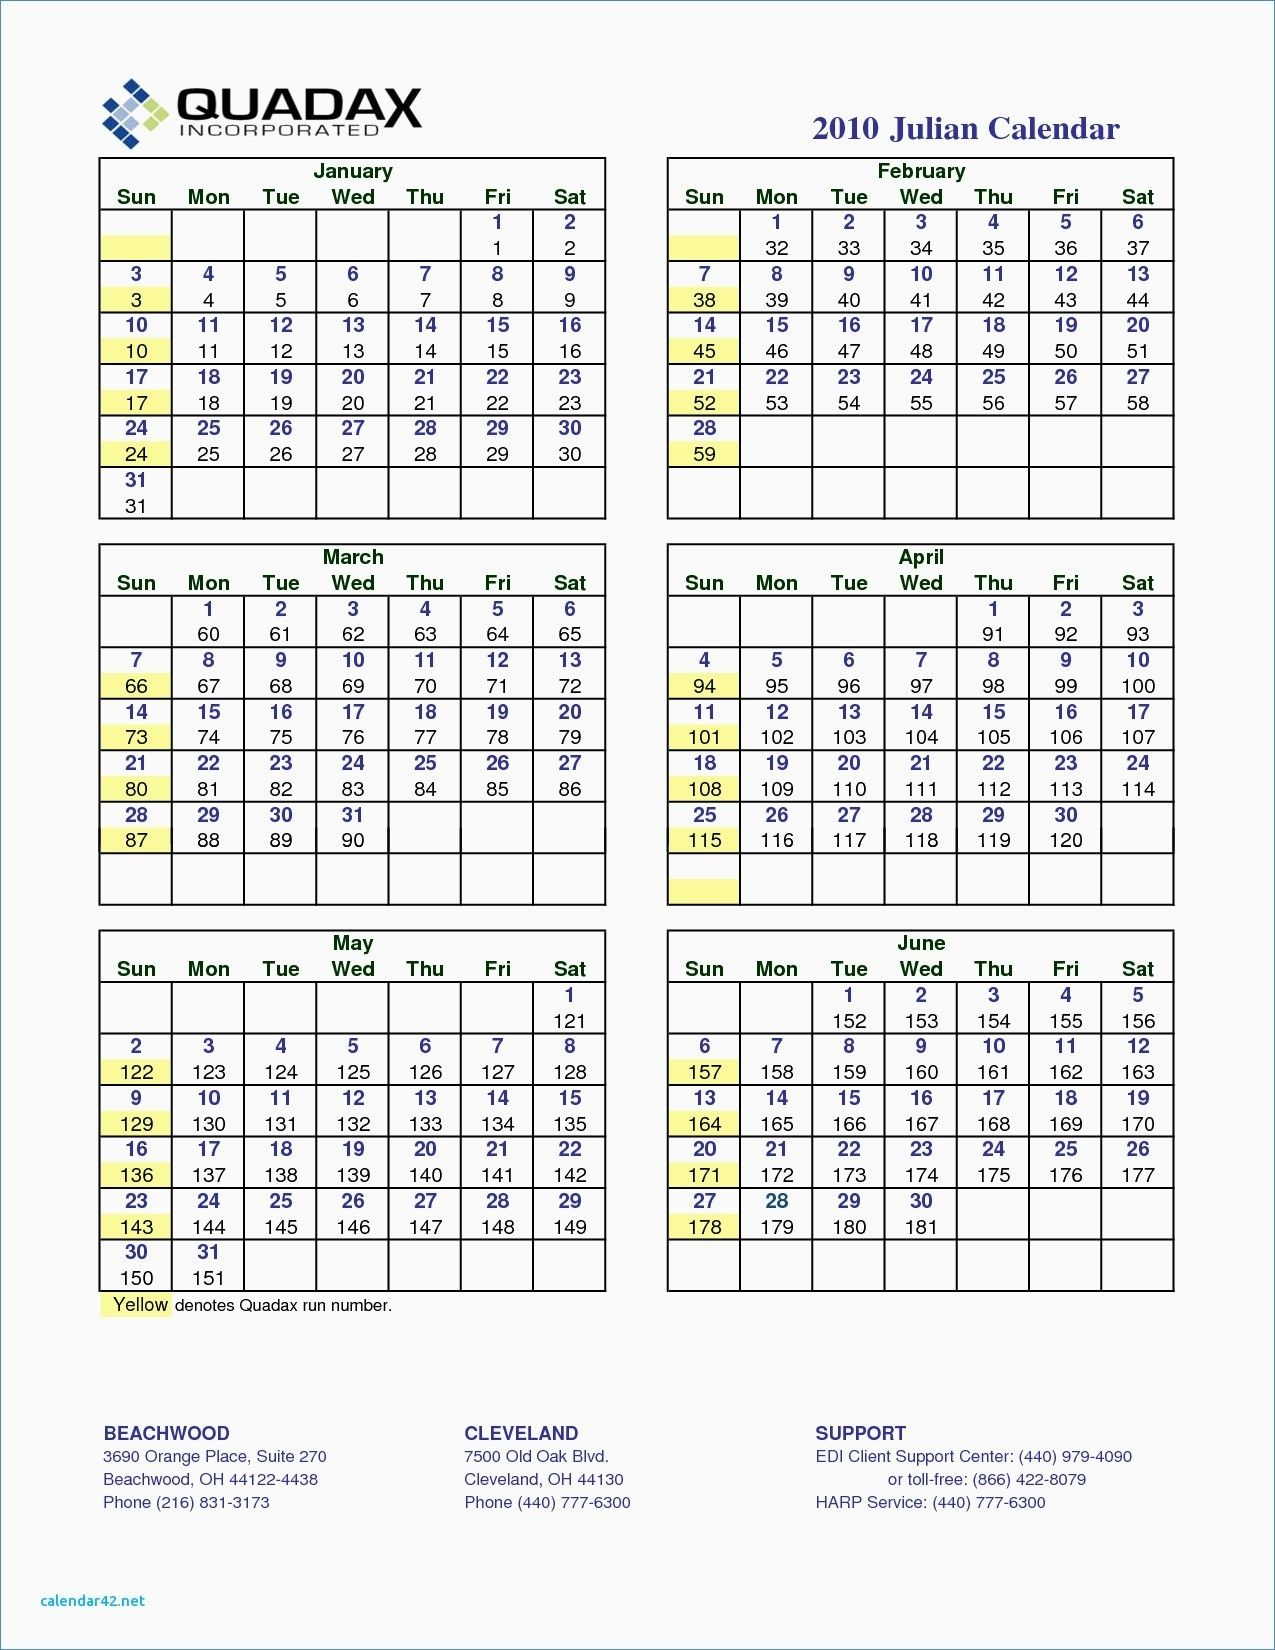 Julian Calendar 2019 Quadax July 2018 Calendar Sri Lanka throughout 2018 Julian Calendar